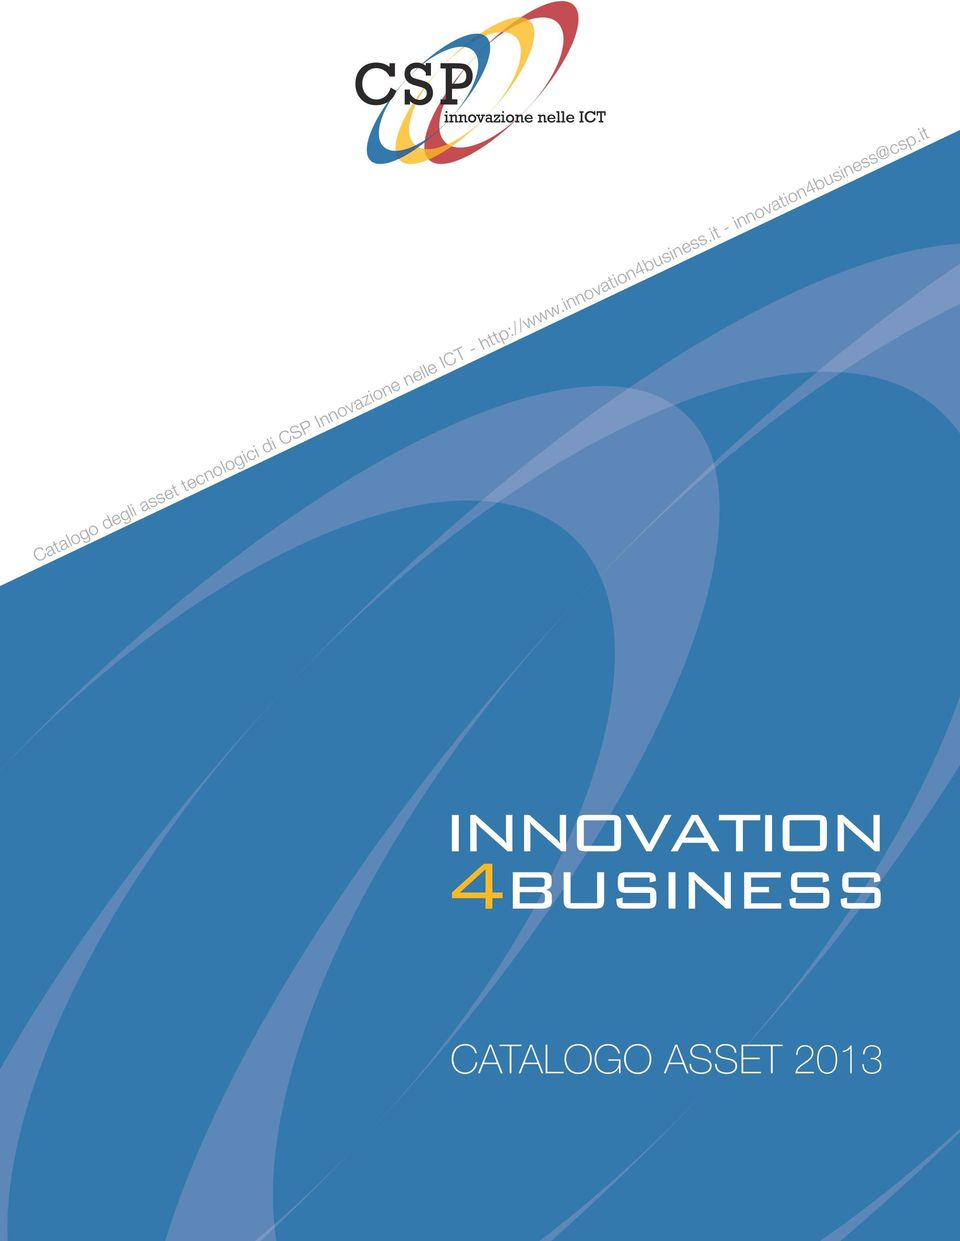 http://www.innovation4business.